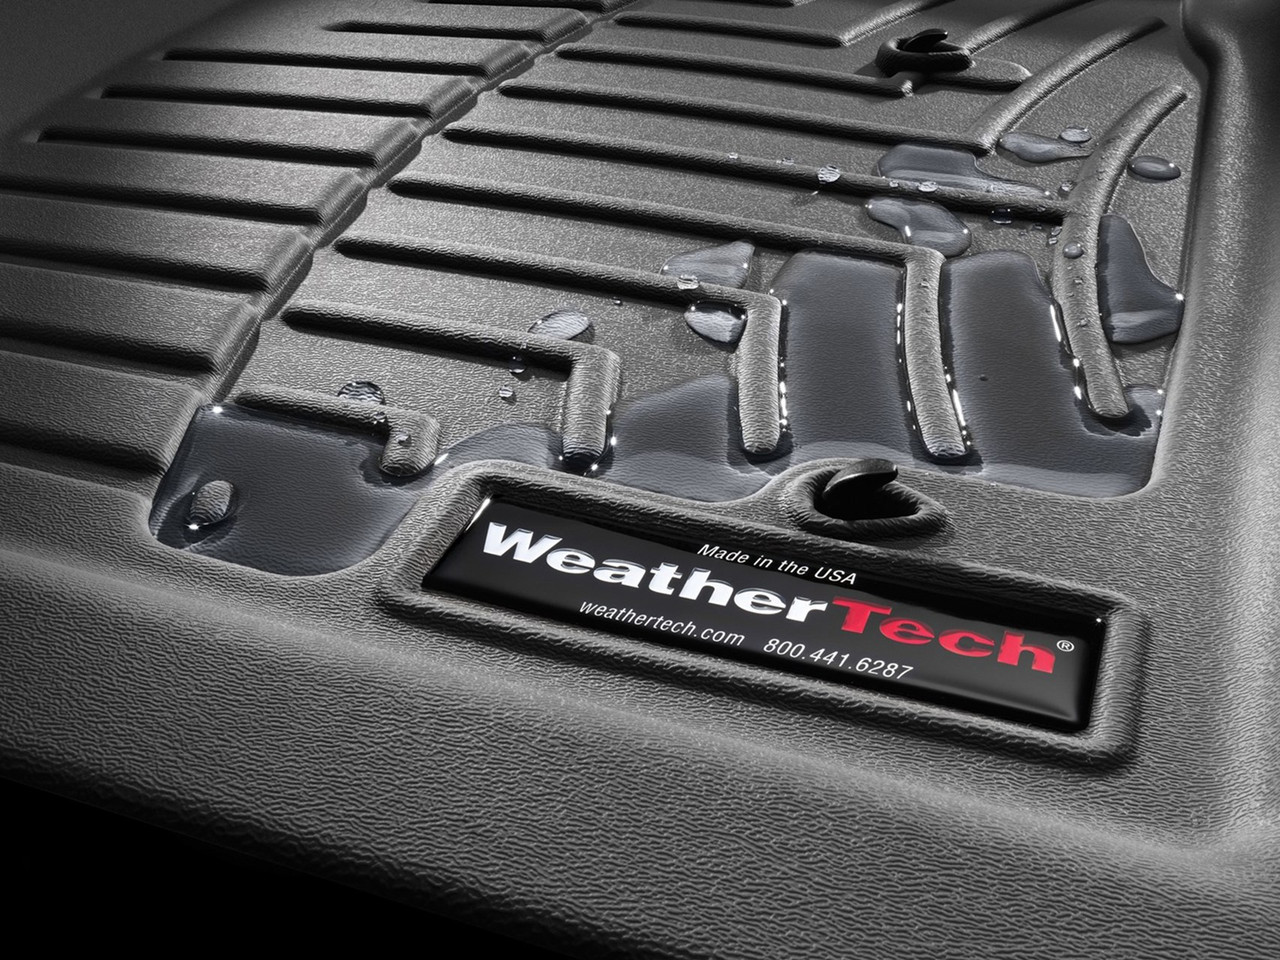 2020-2021 Hyundai Palisade WeatherTech Floor Liners - Close Up